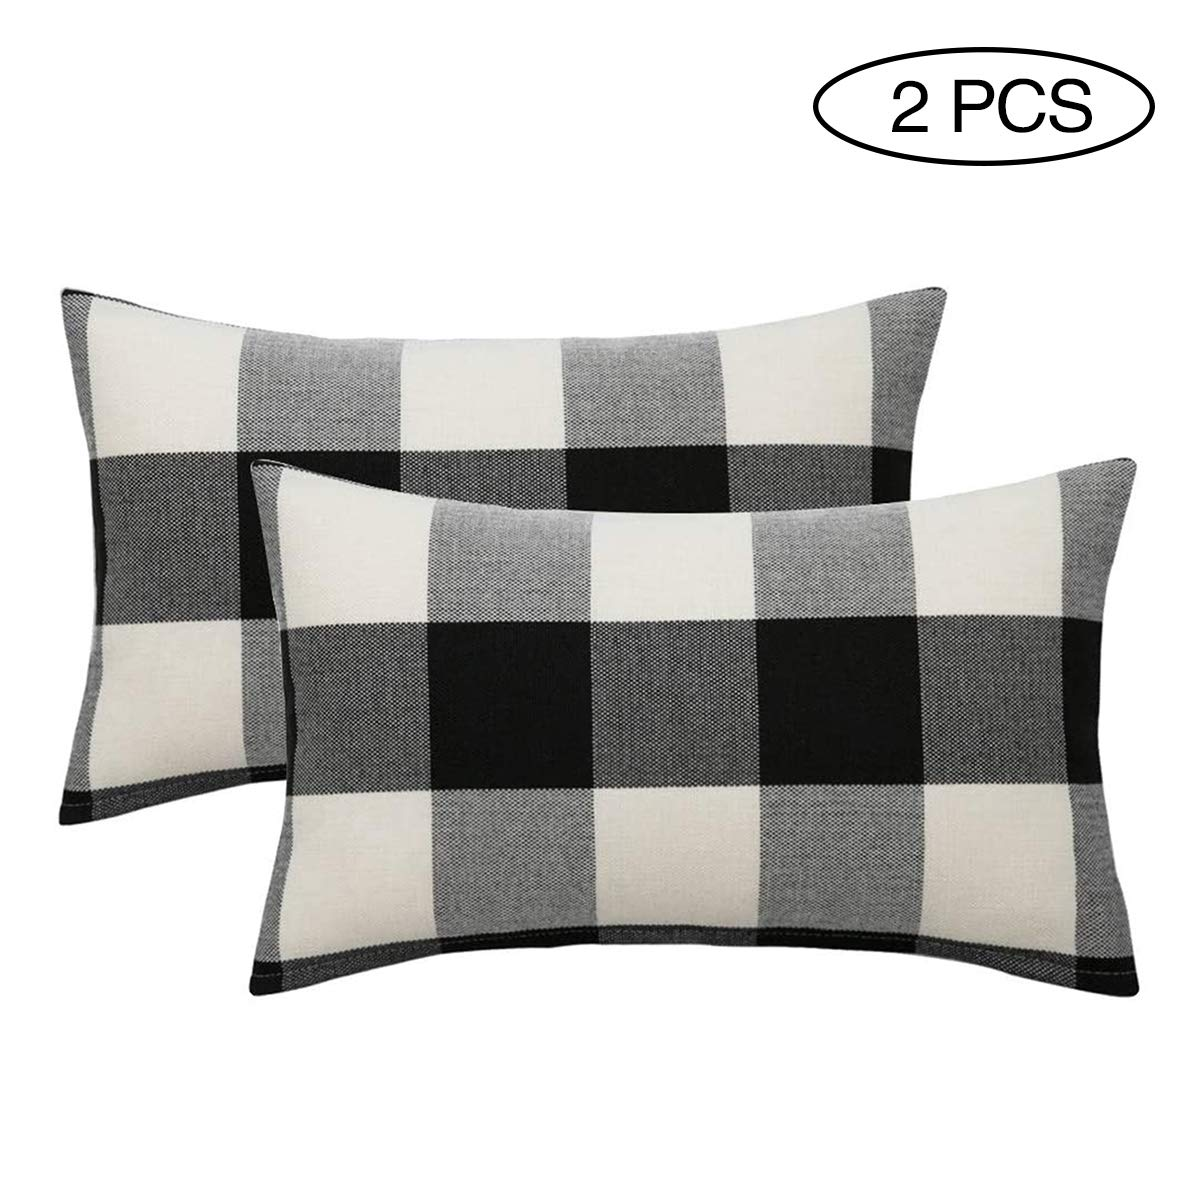 Black//White, 12 x 20 SEEKSEE Set of 2 Buffalo Check Black and White Plaid Throw Pillow Covers Cushion Cover Cotton Linen for Fall Farmhouse Christmas Home Decor